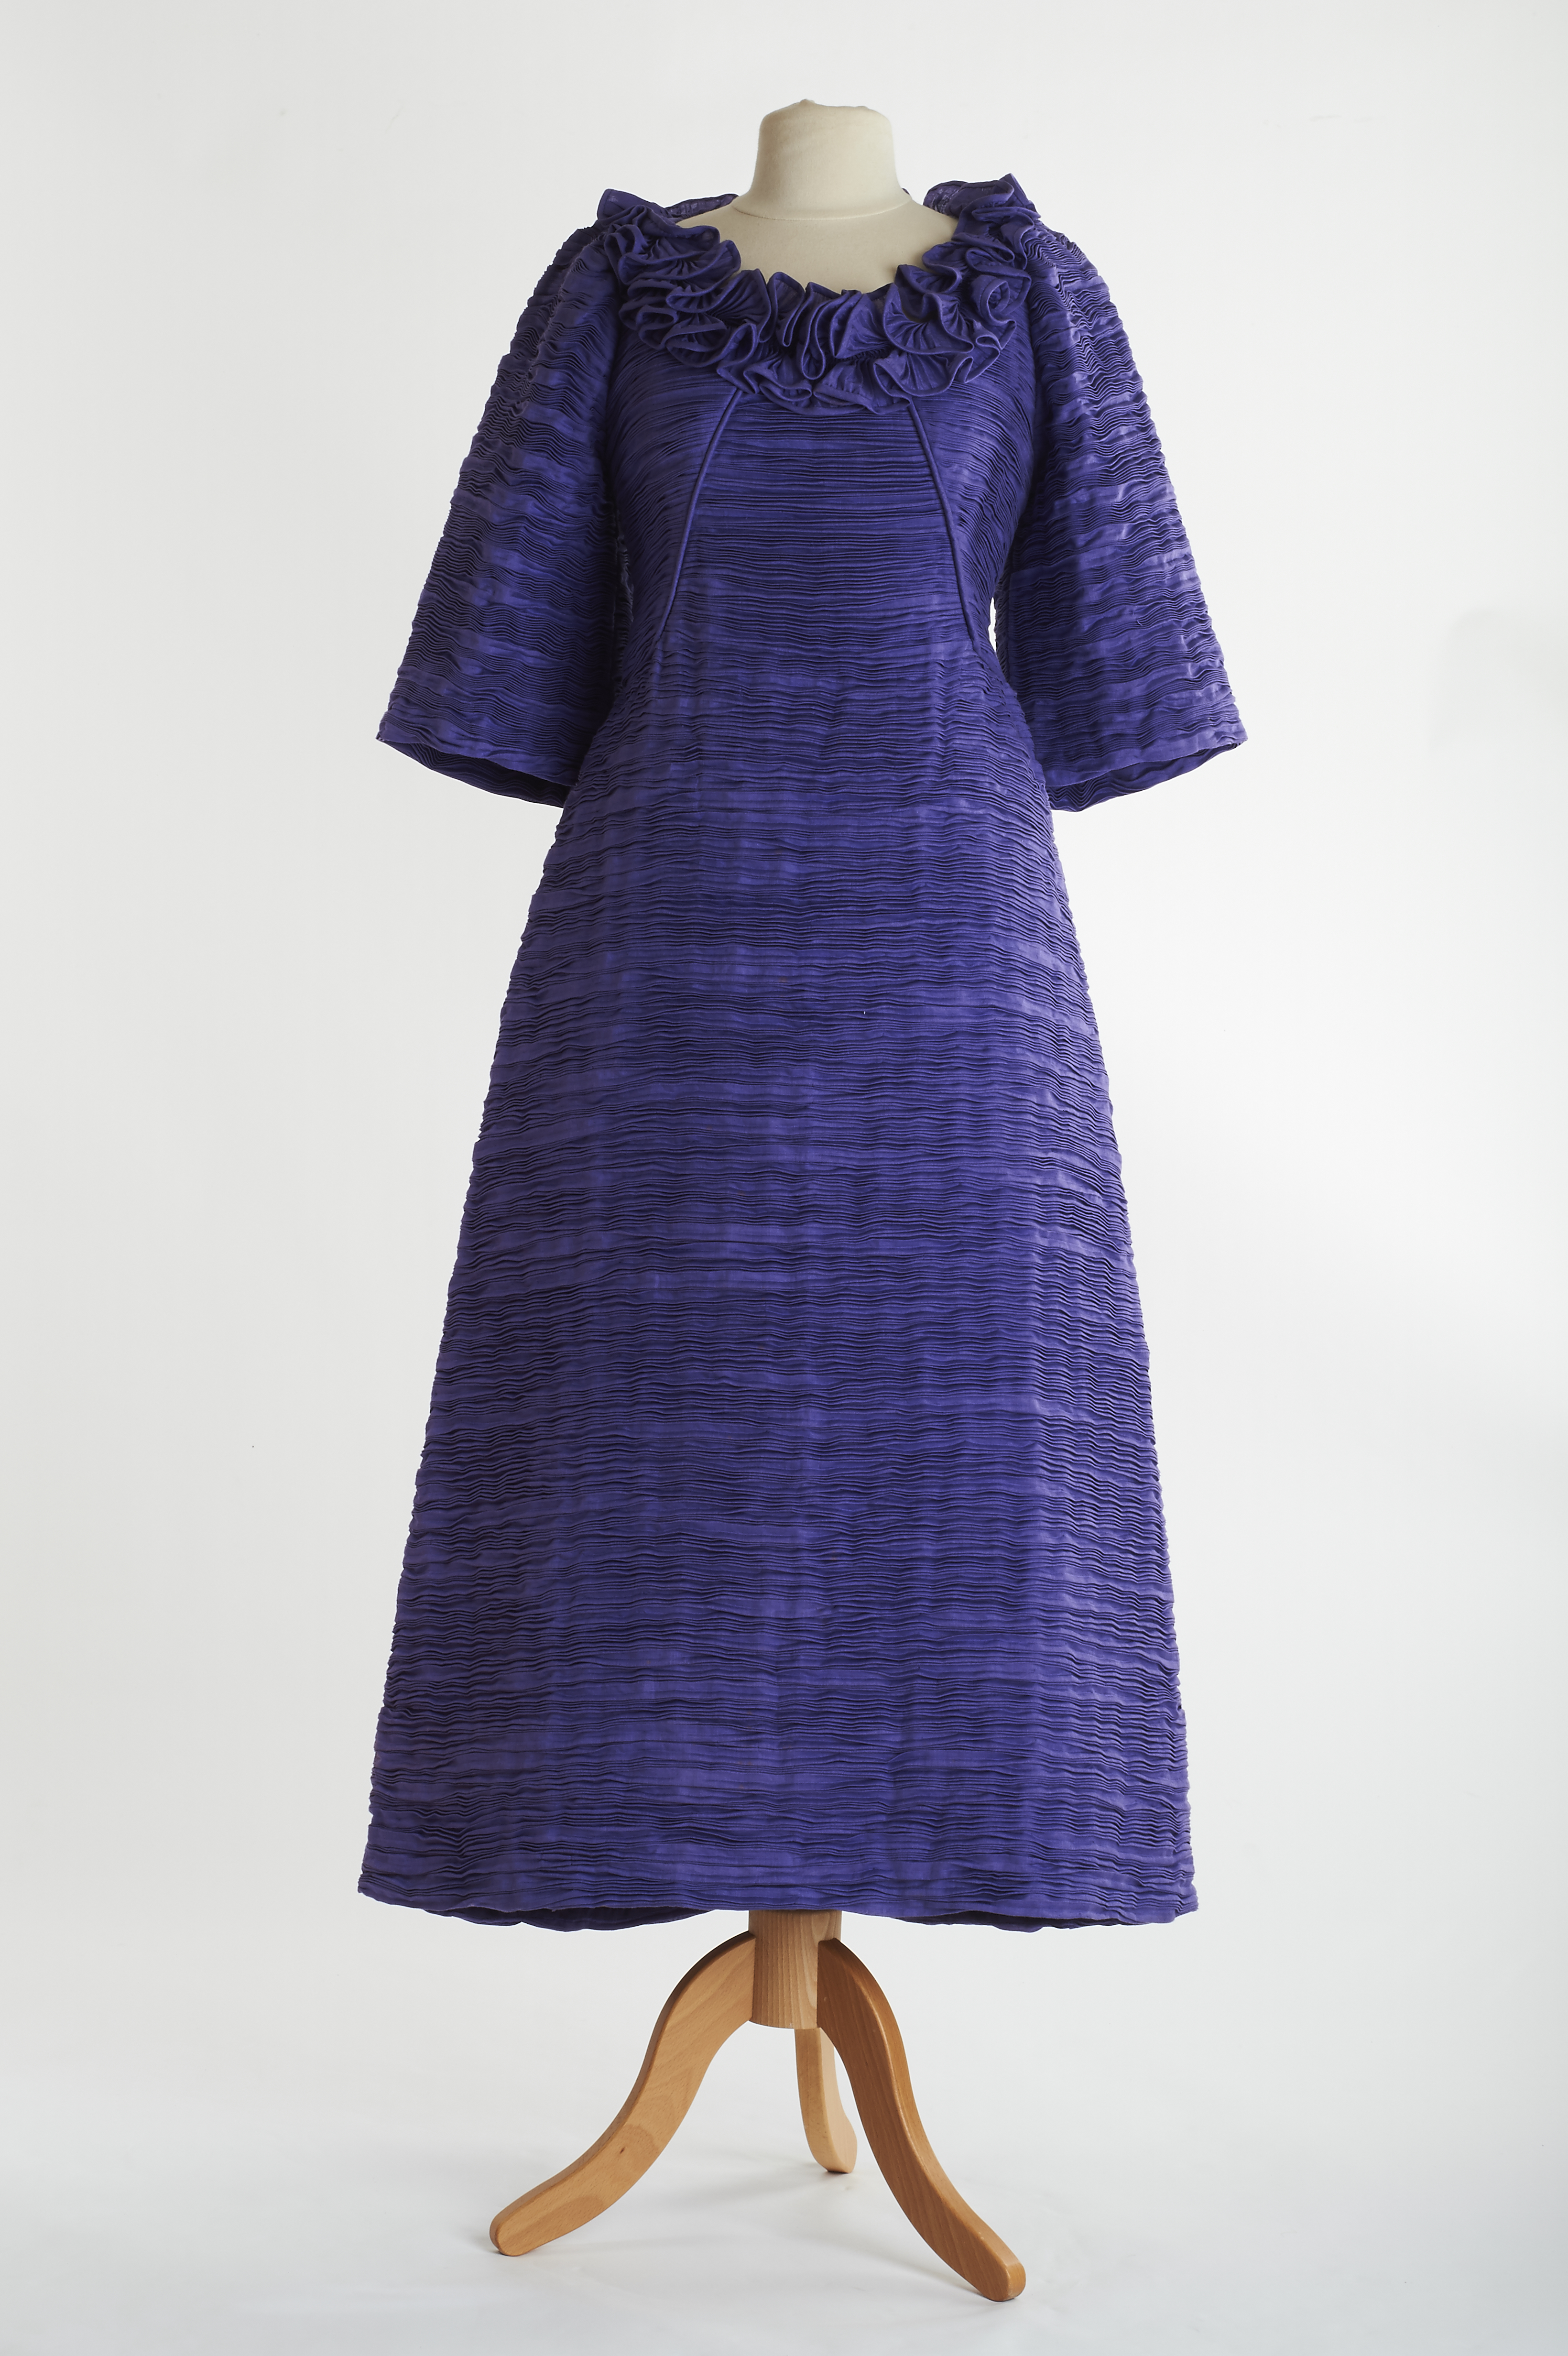 File:Lavender evening gown by Sybil Connolly.jpg - Wikimedia Commons